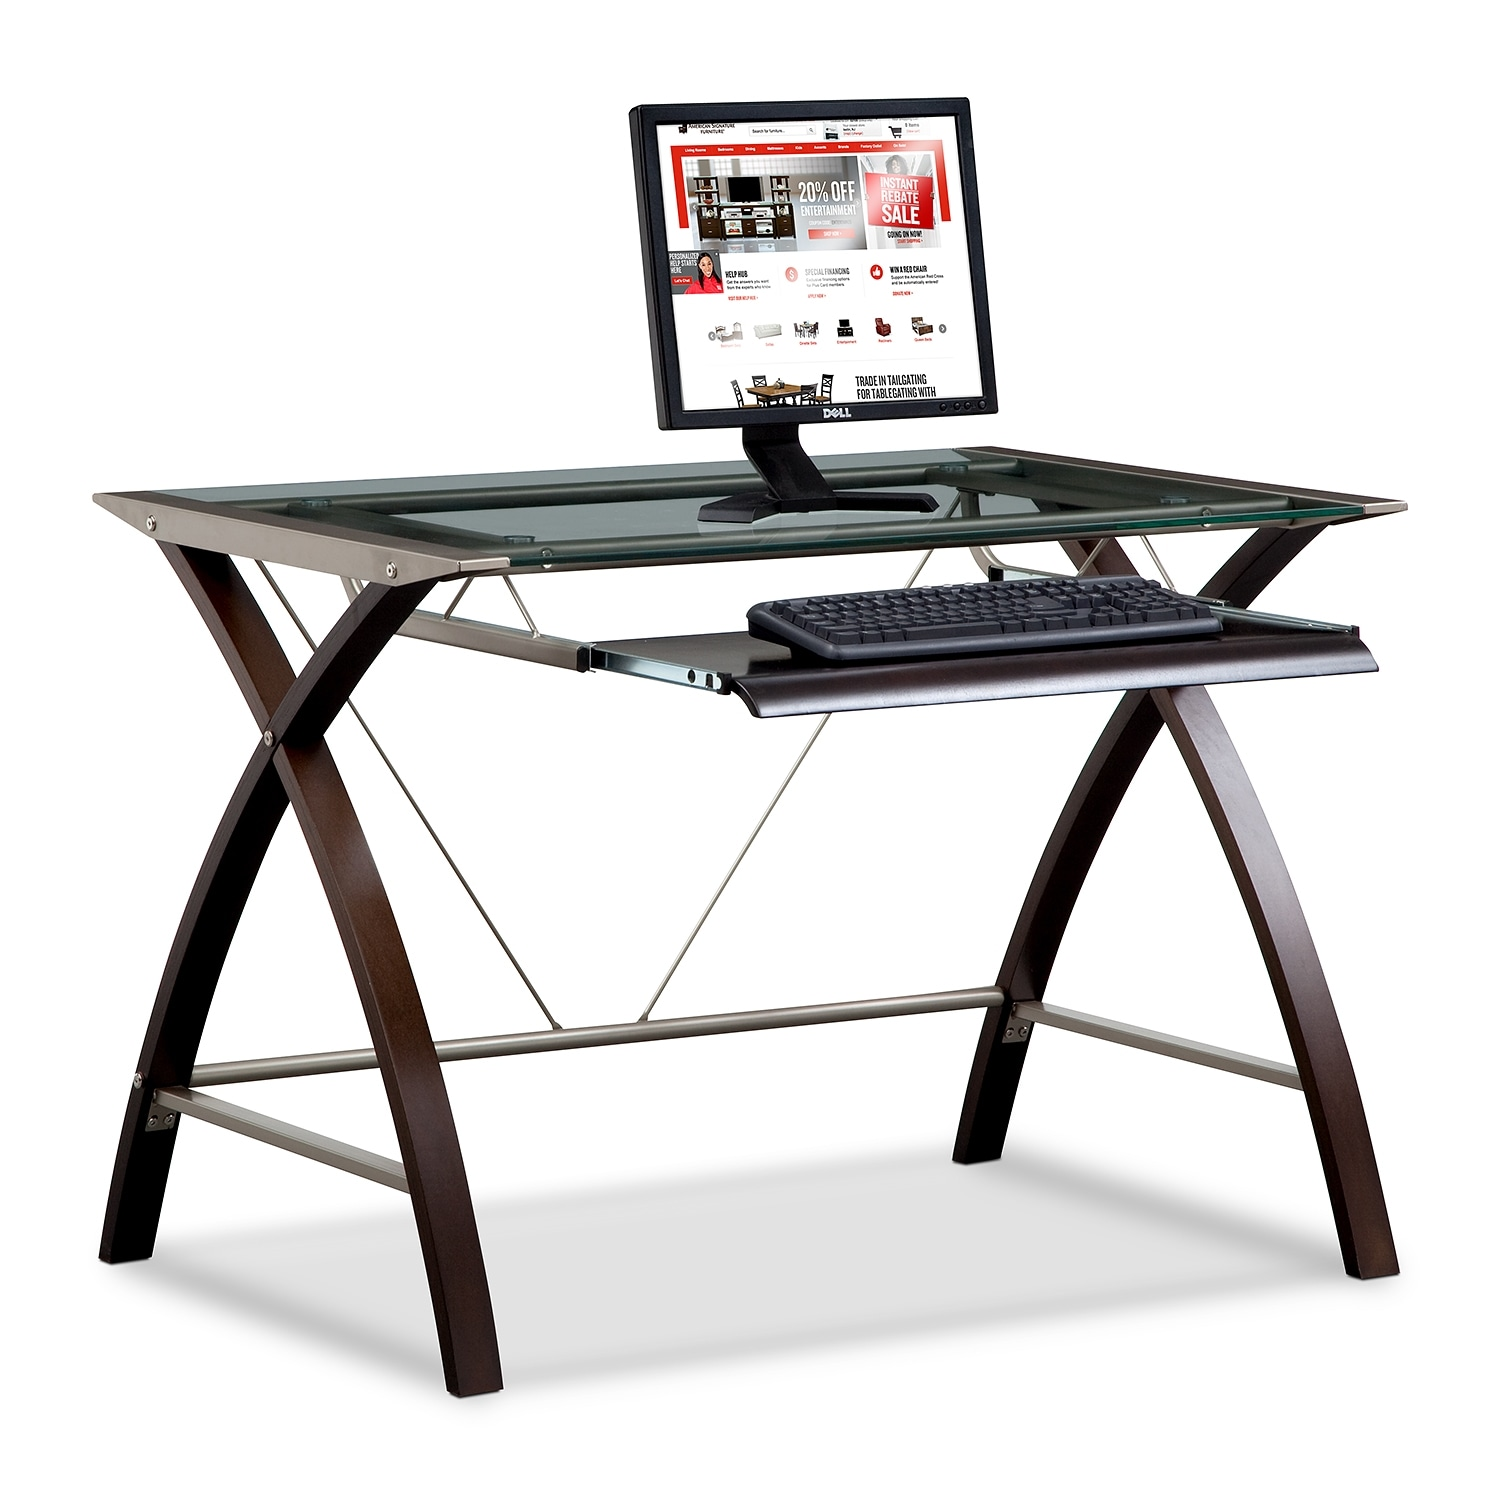 Home Office Furniture   Value City   Value City Furniture and ...